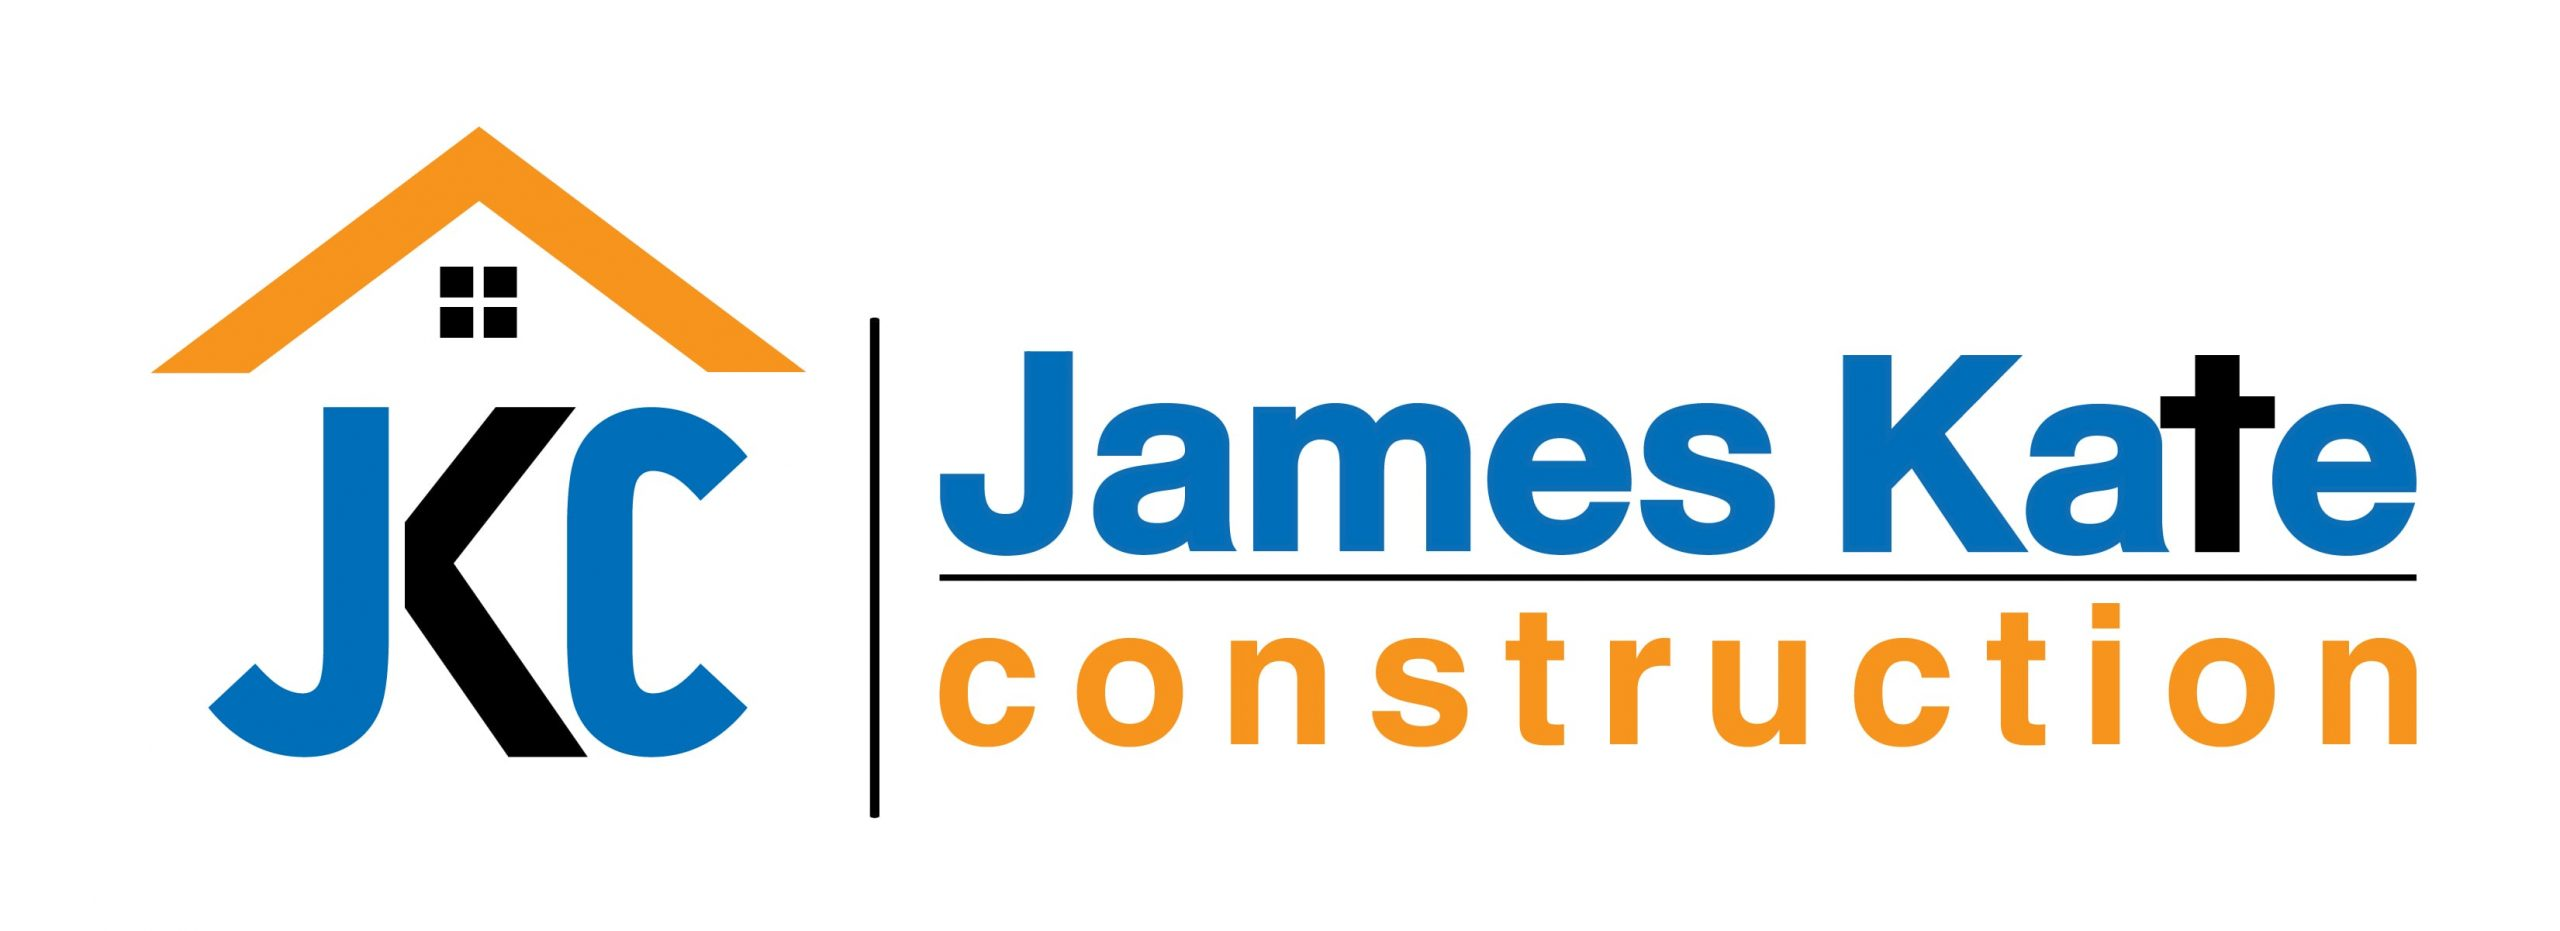 James Kate Construction: Roofing, Painting & Windows is a Leading Roofing Contractor In Mansfield, TX 6